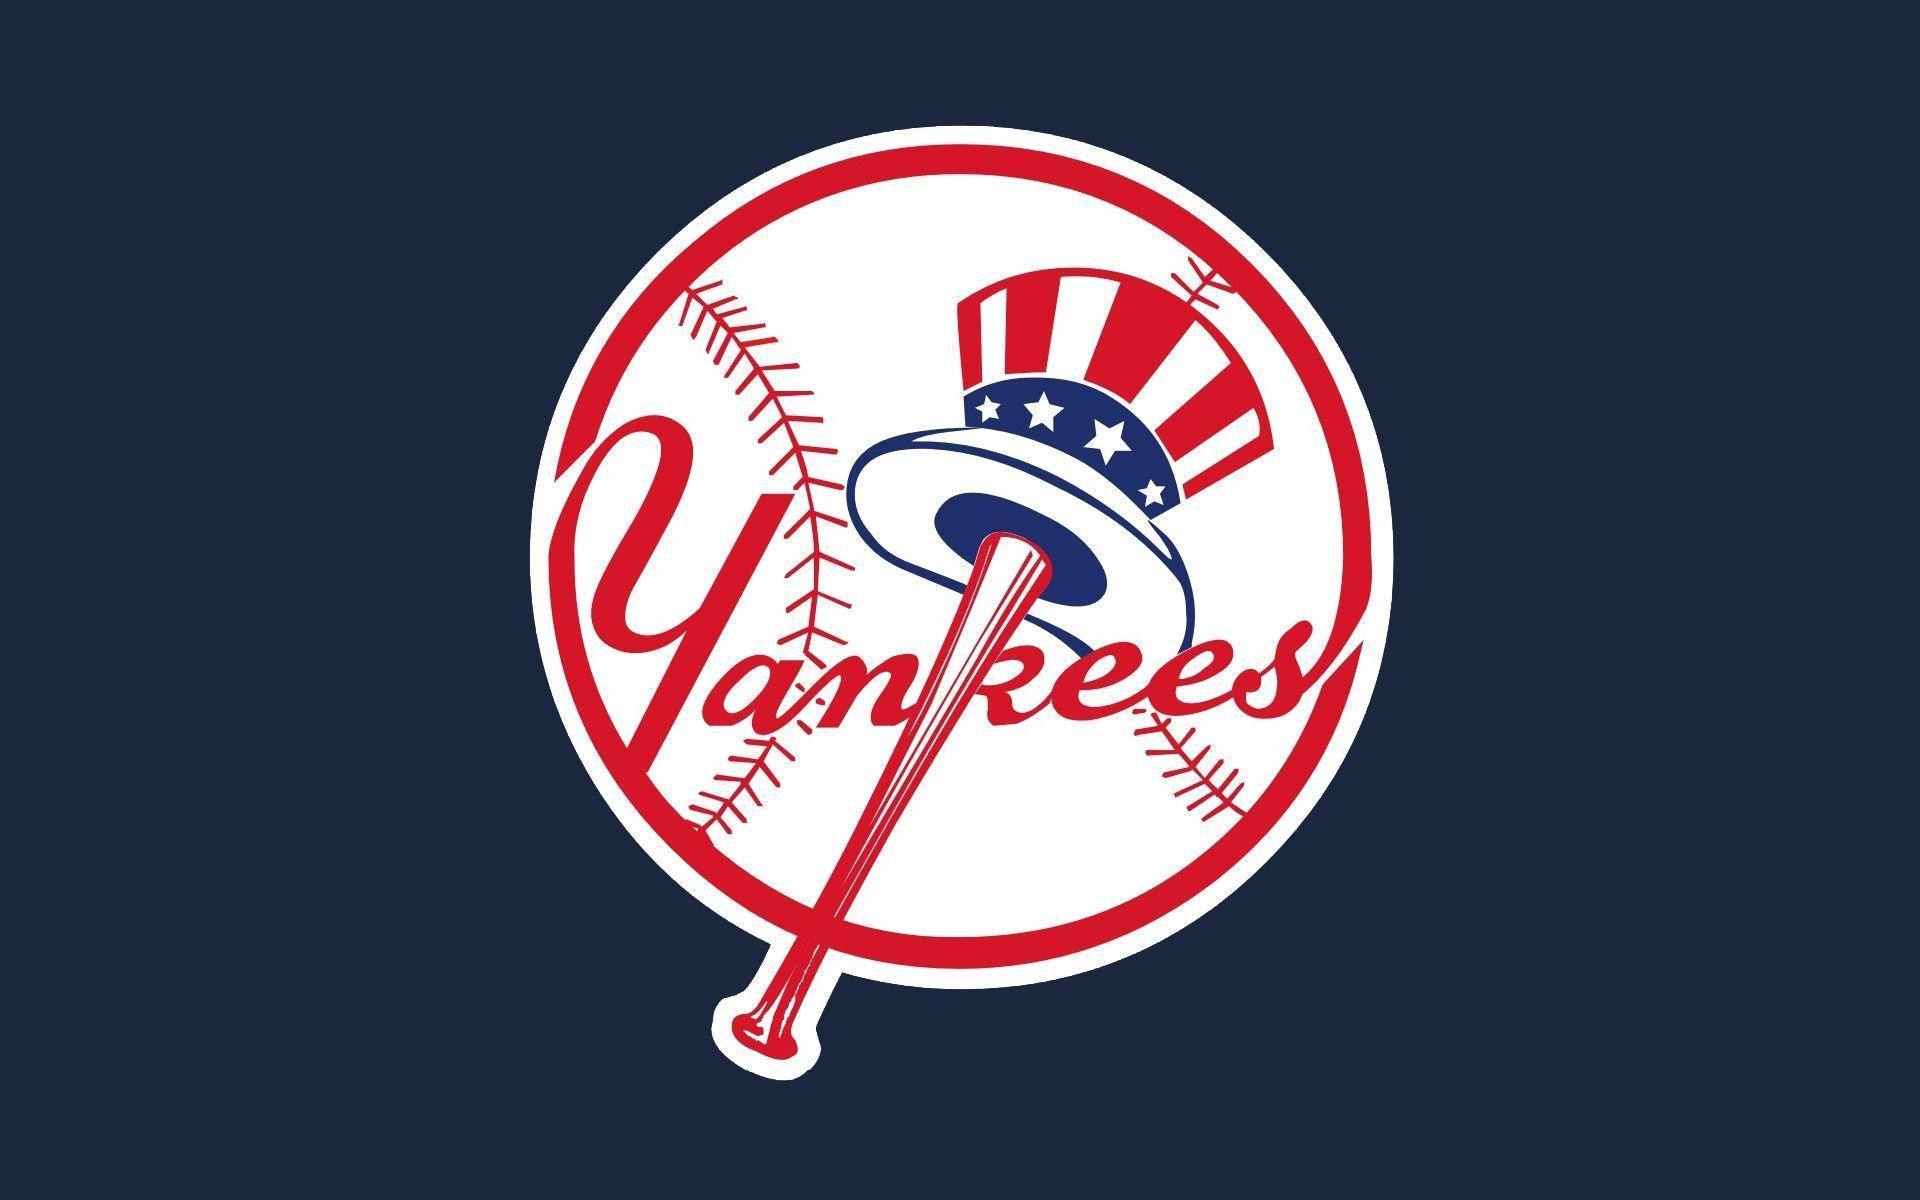 New york yankees iphone wallpaper SF